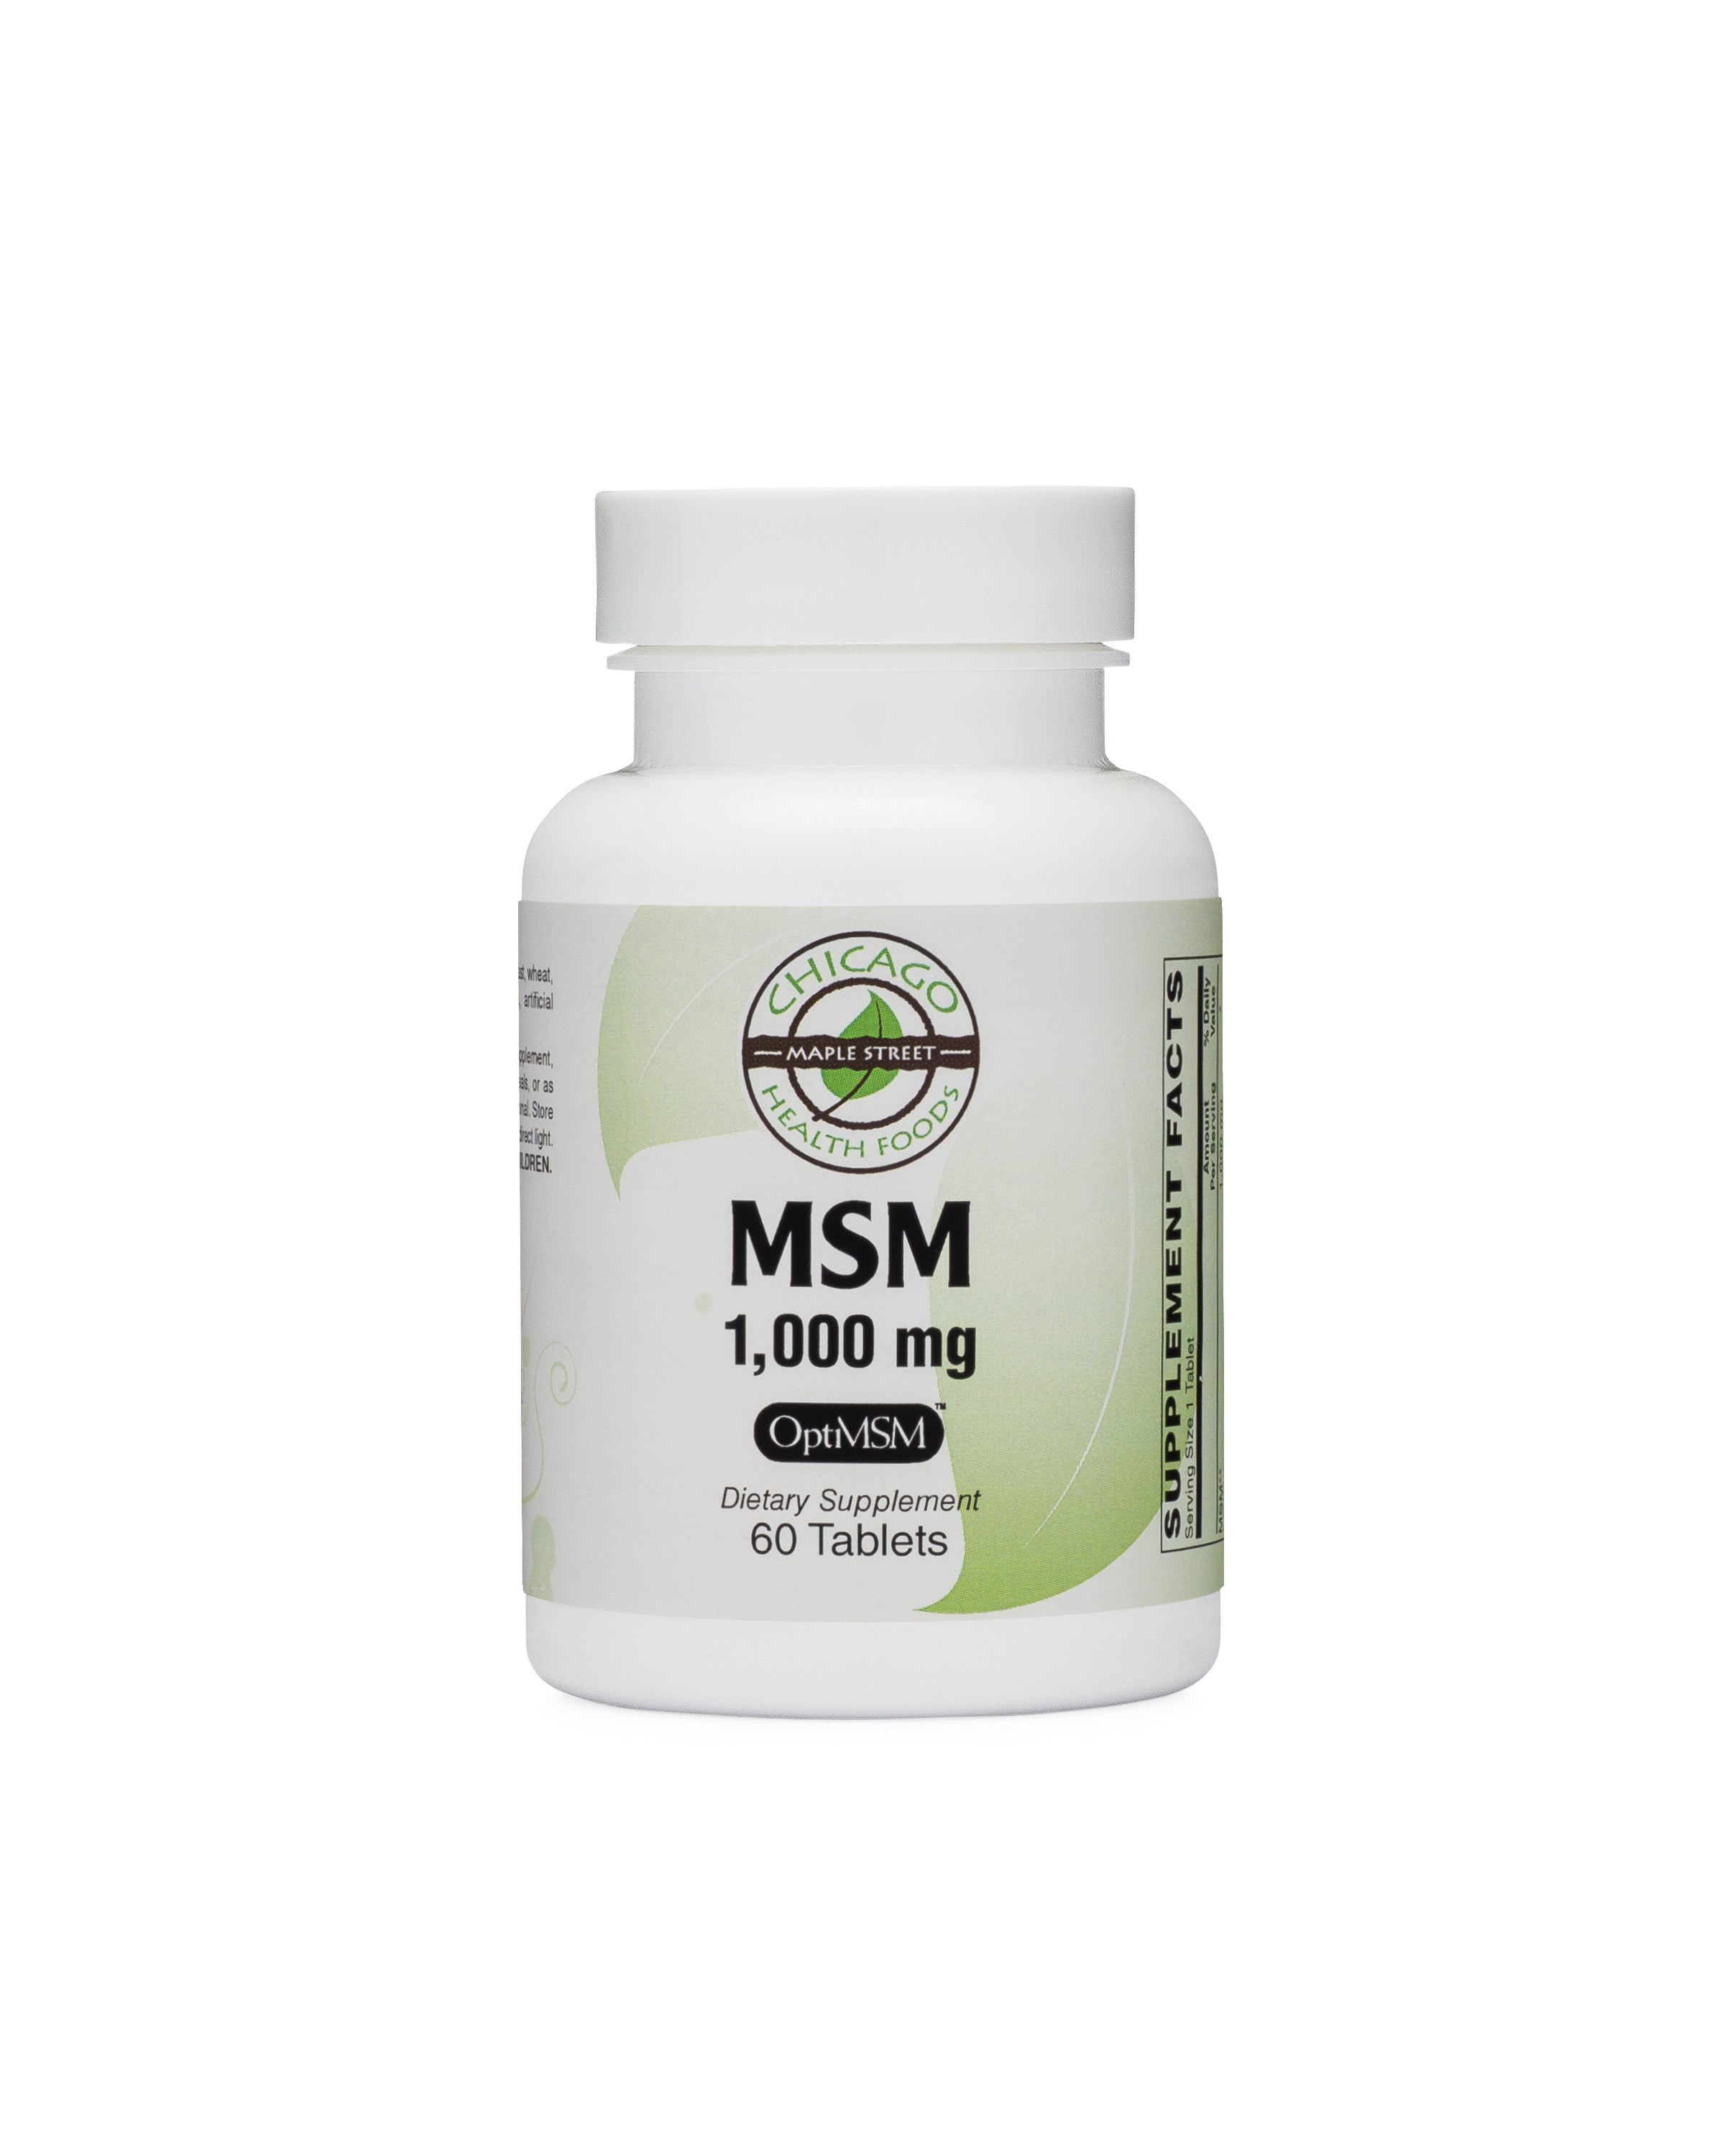 MSM Chicago Health 1,000 mg 60 tablets